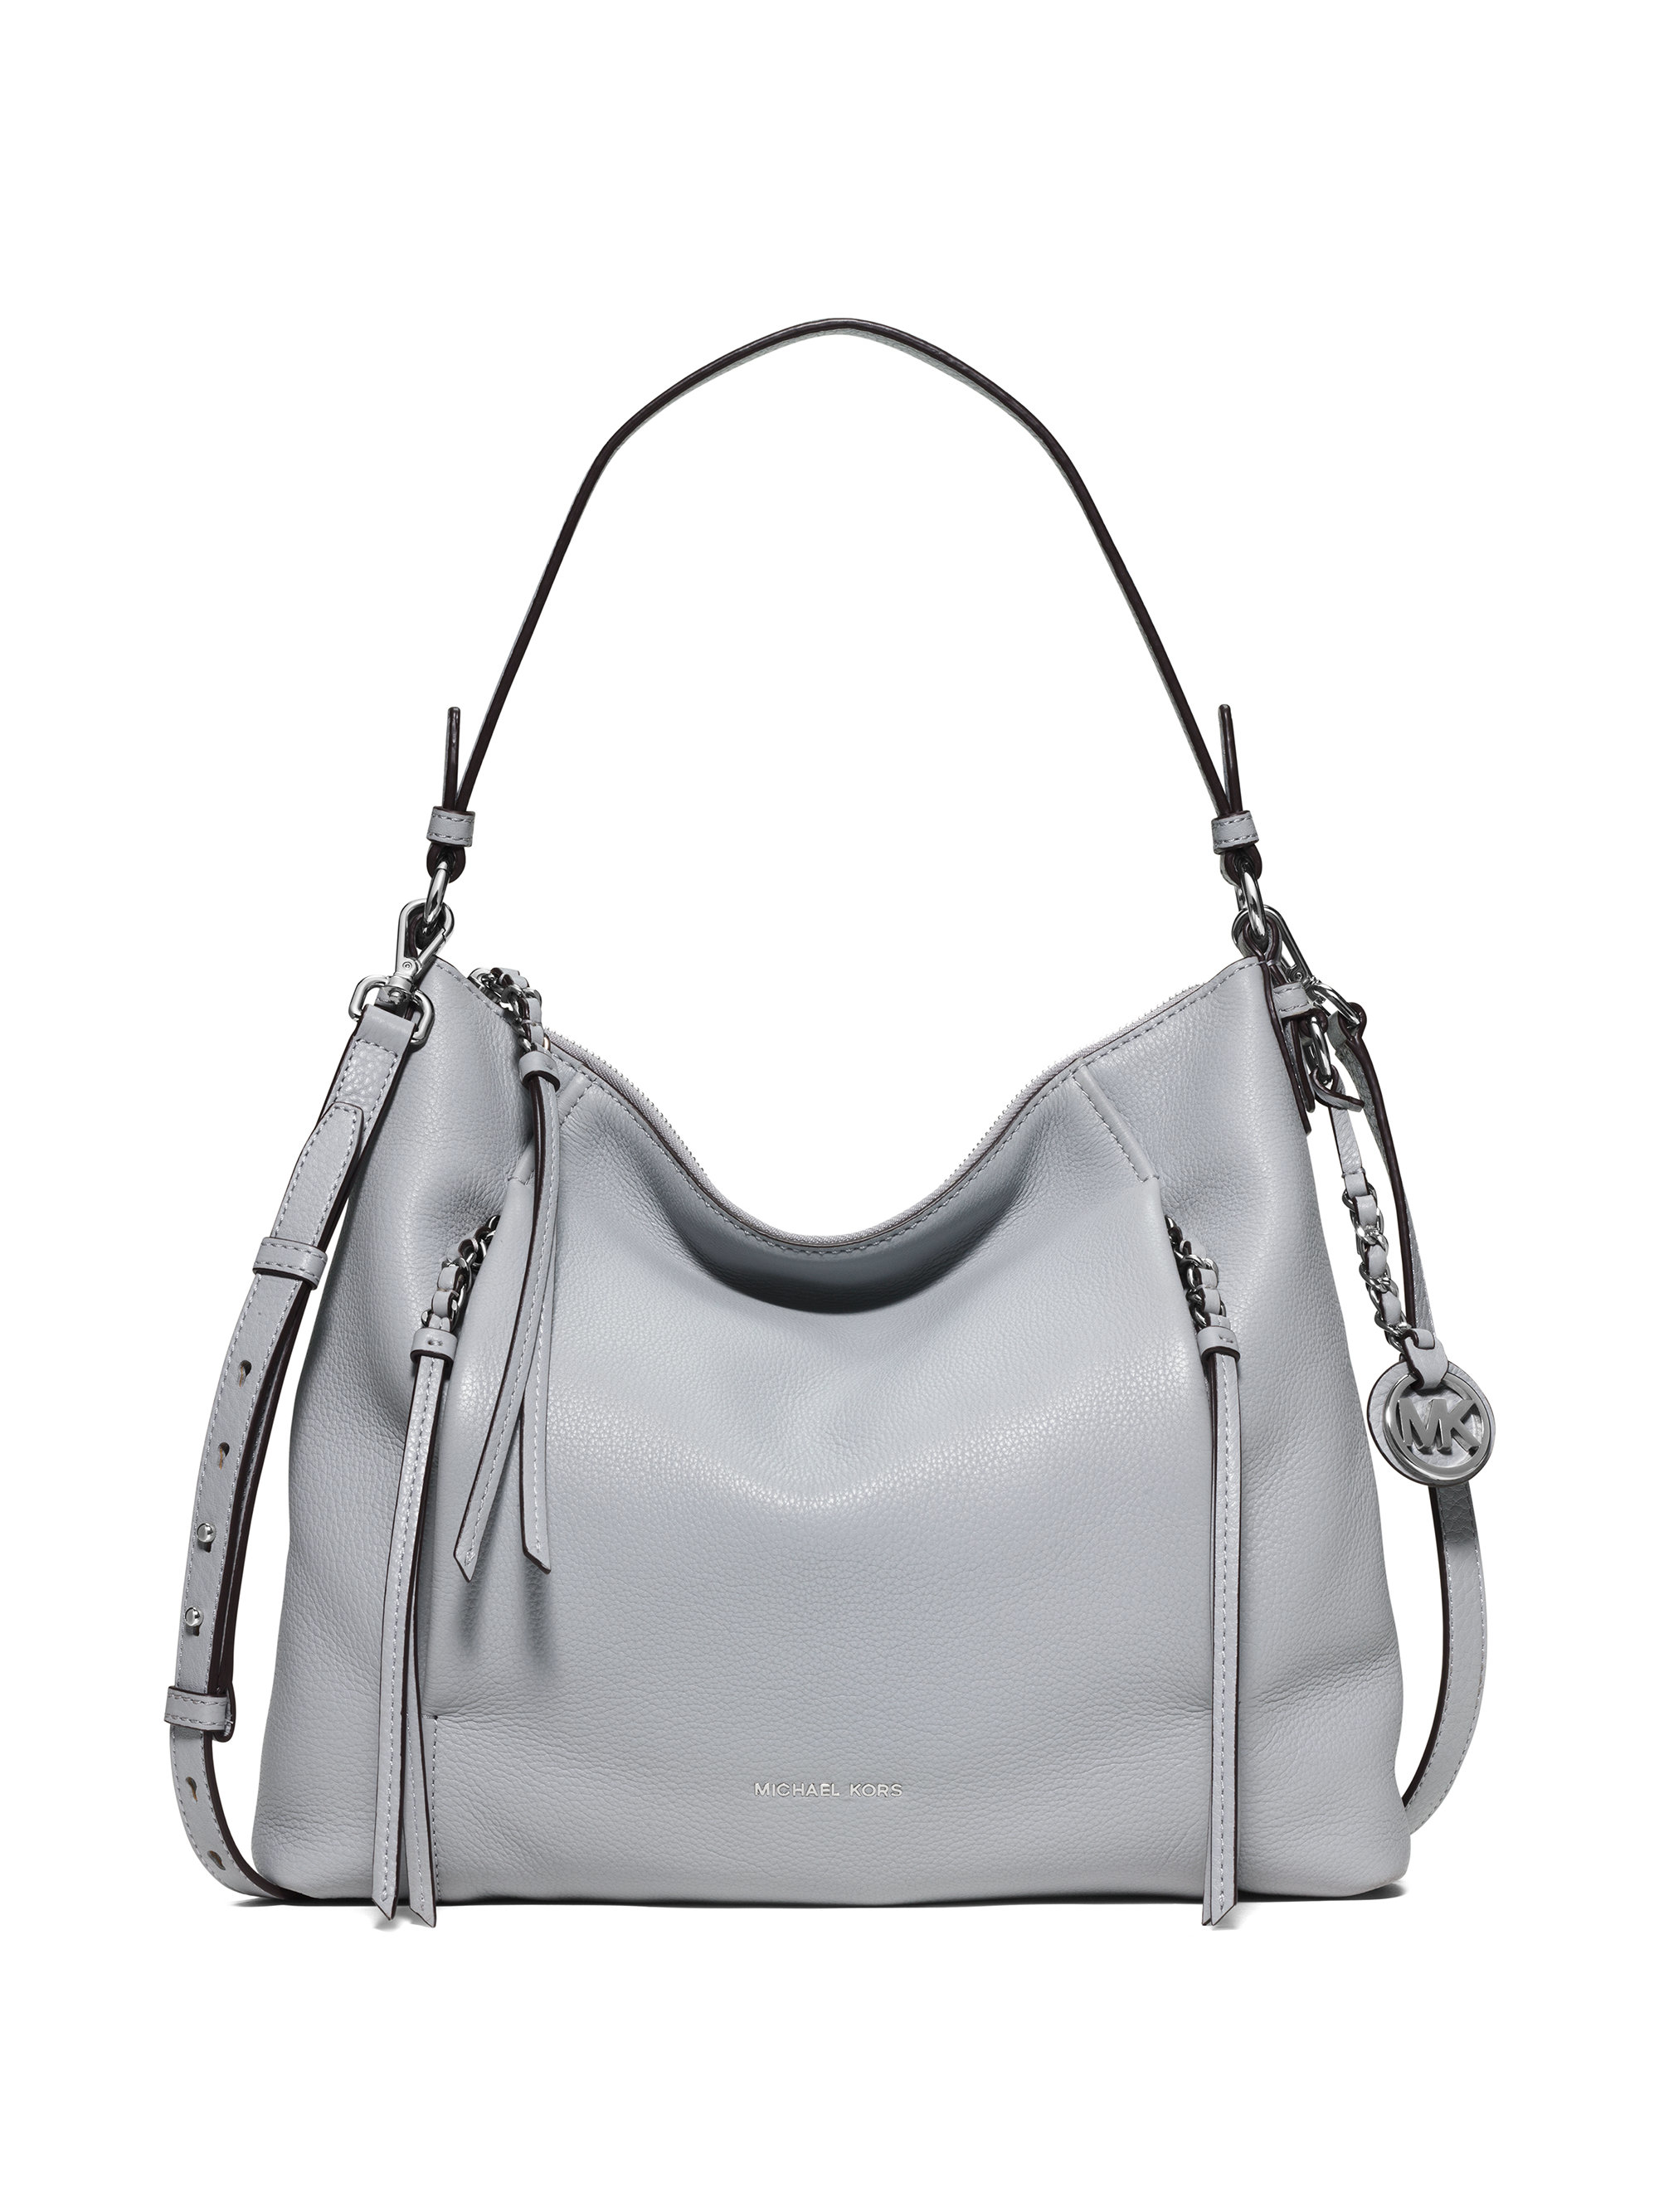 338a481dcab3a4 MICHAEL Michael Kors Corinne Large Leather Shoulder Bag in Gray - Lyst